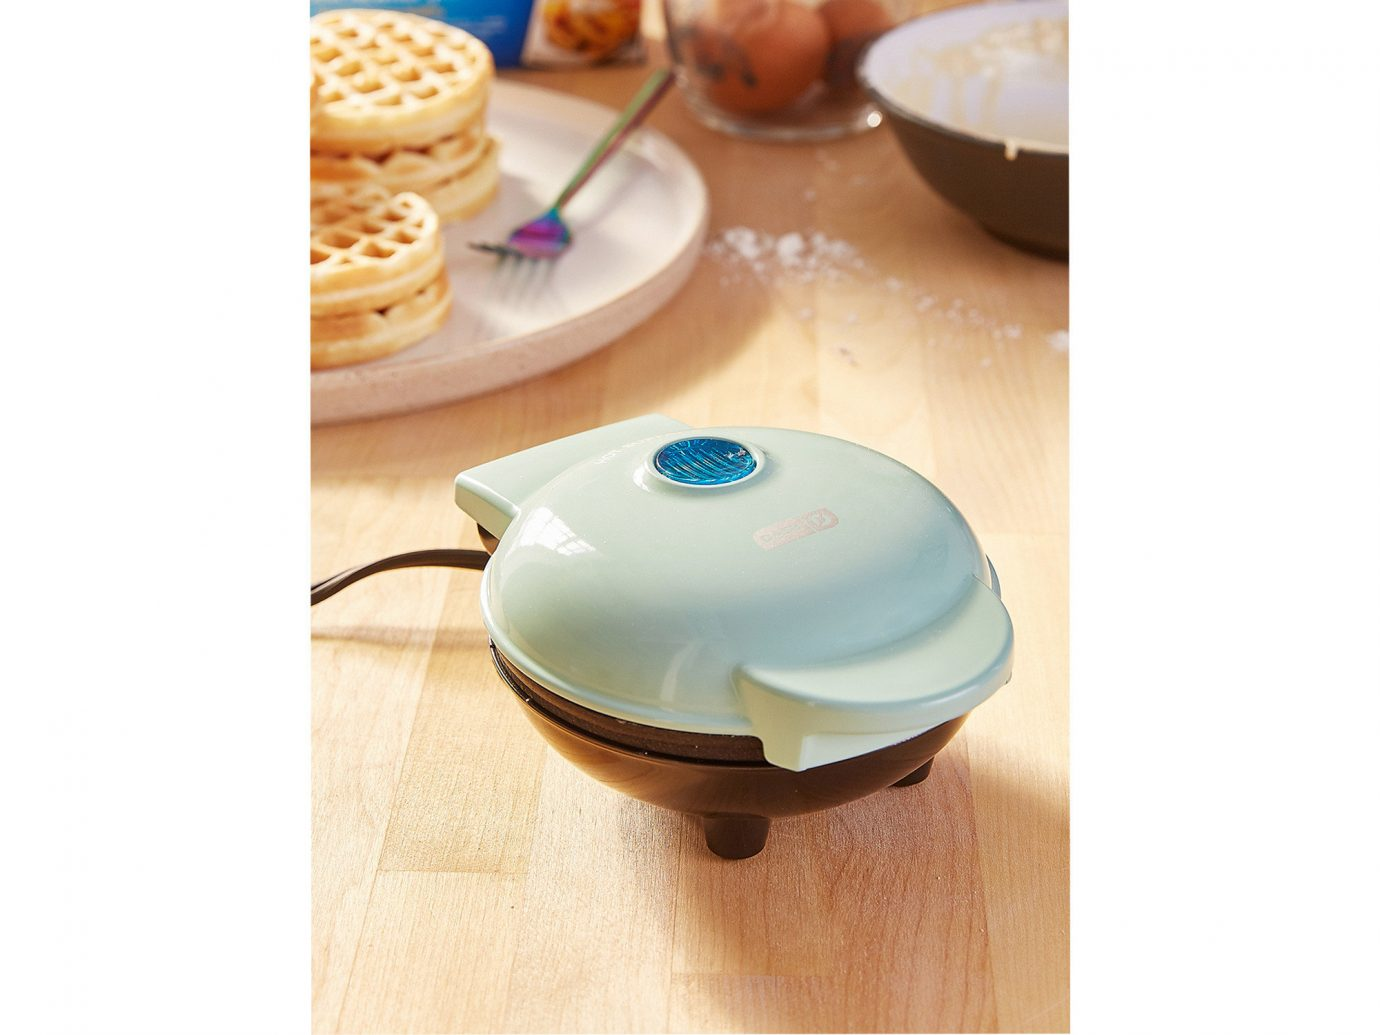 Style + Design food small appliance table ceramic dish